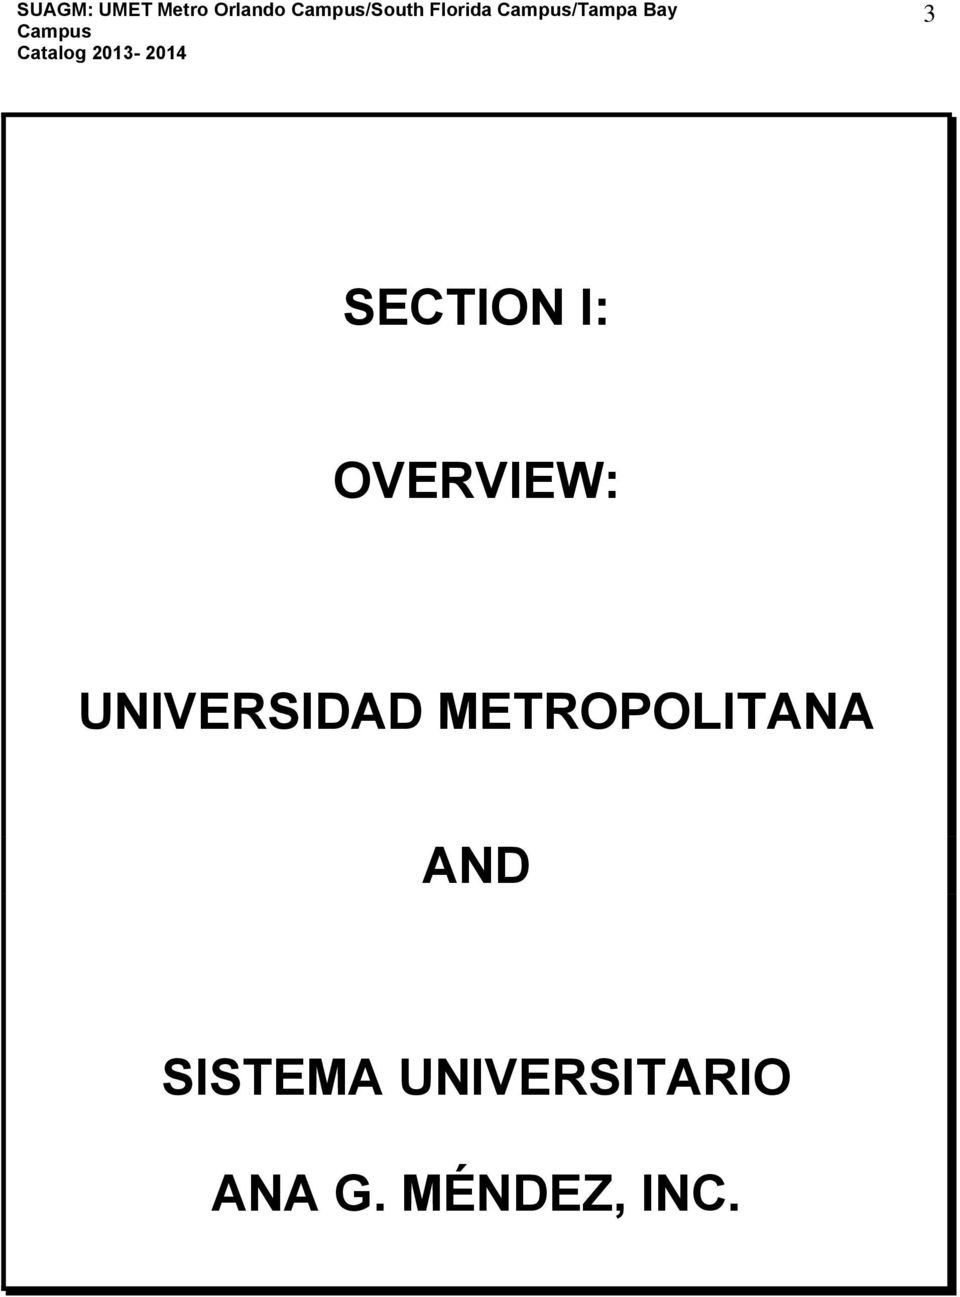 OVERVIEW: UNIVERSIDAD METROPOLITANA